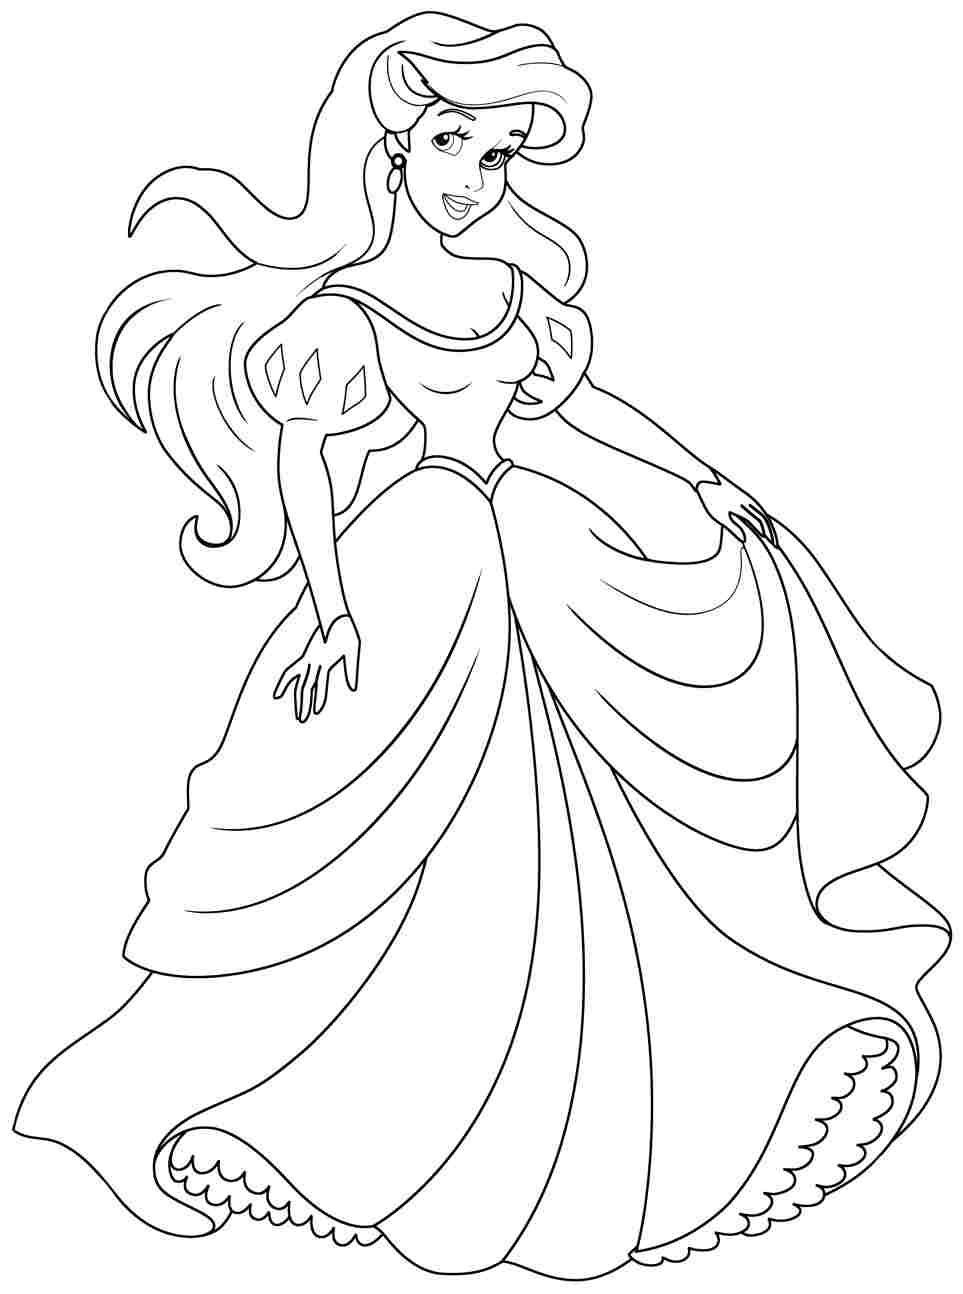 free princess ariel coloring pages ariel coloring pages to download and print for free